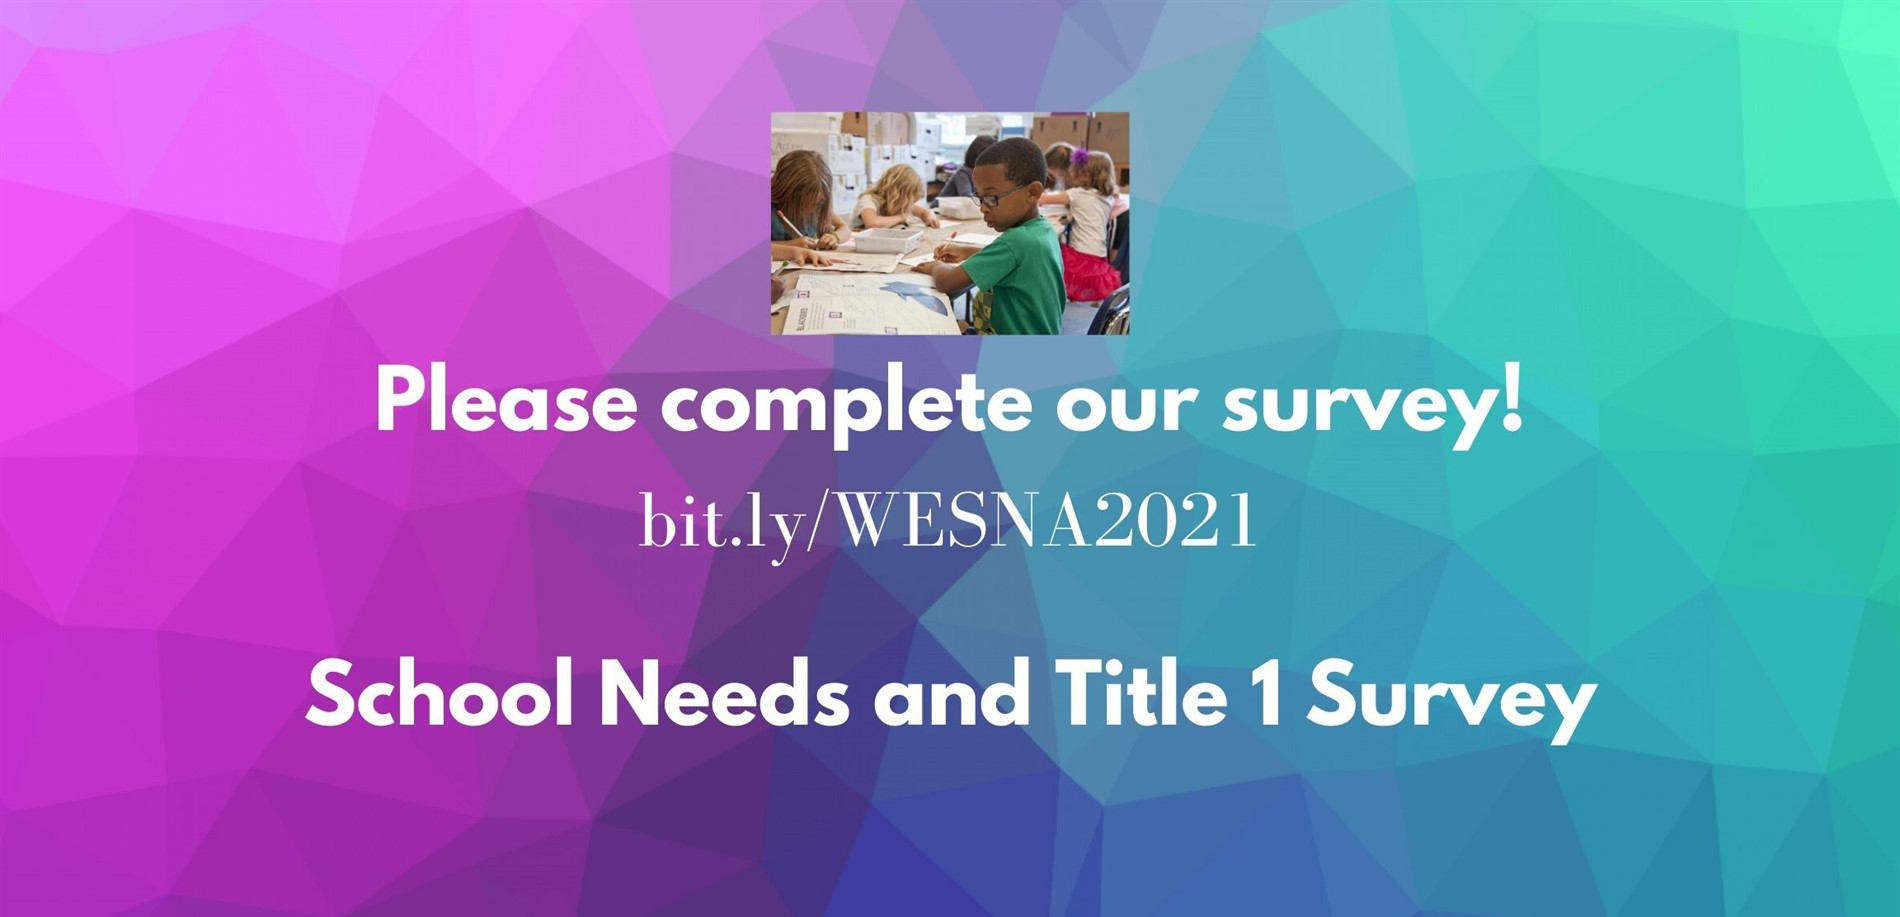 School Needs and Title 1 Survey